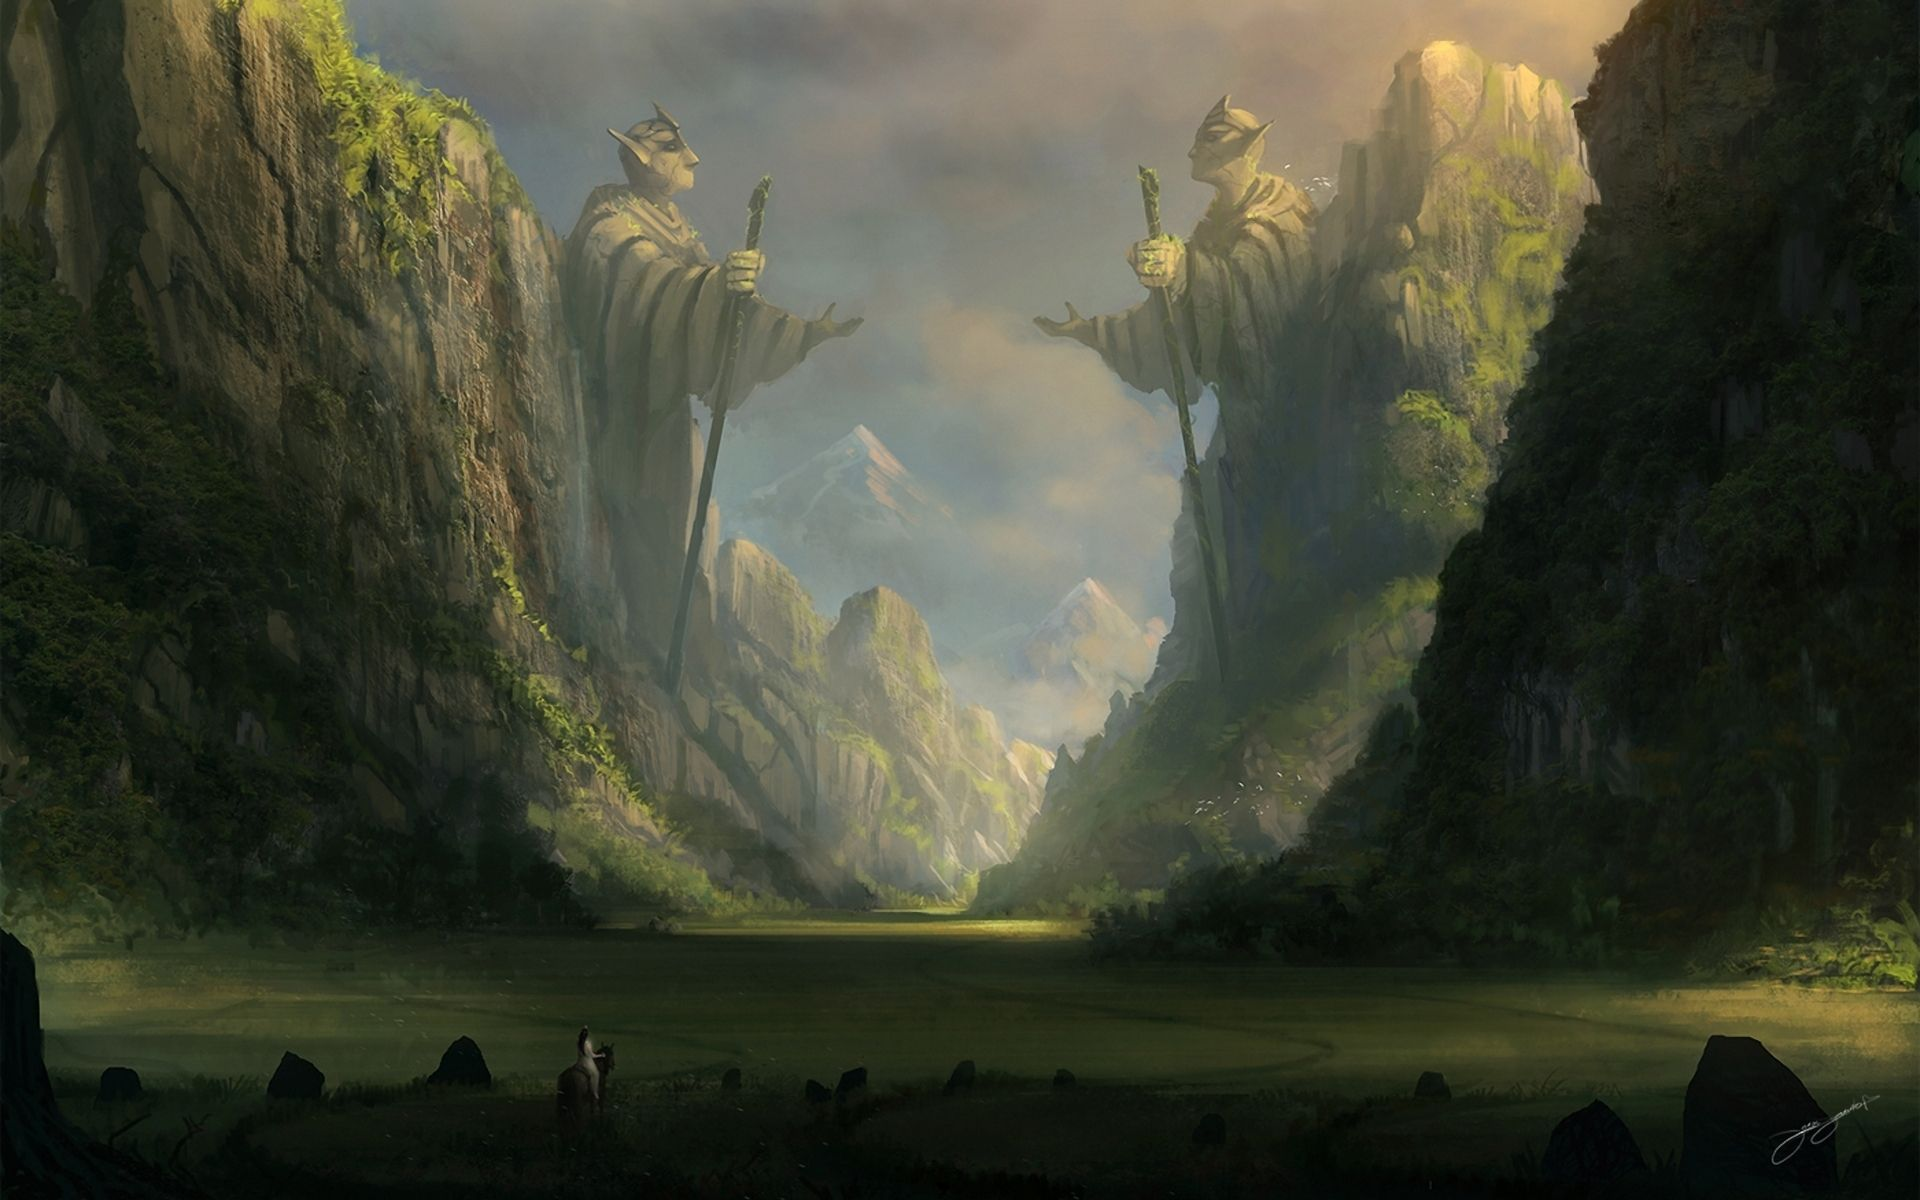 Fantasy Landscape Wallpaper 4k Posted By Zoey Anderson